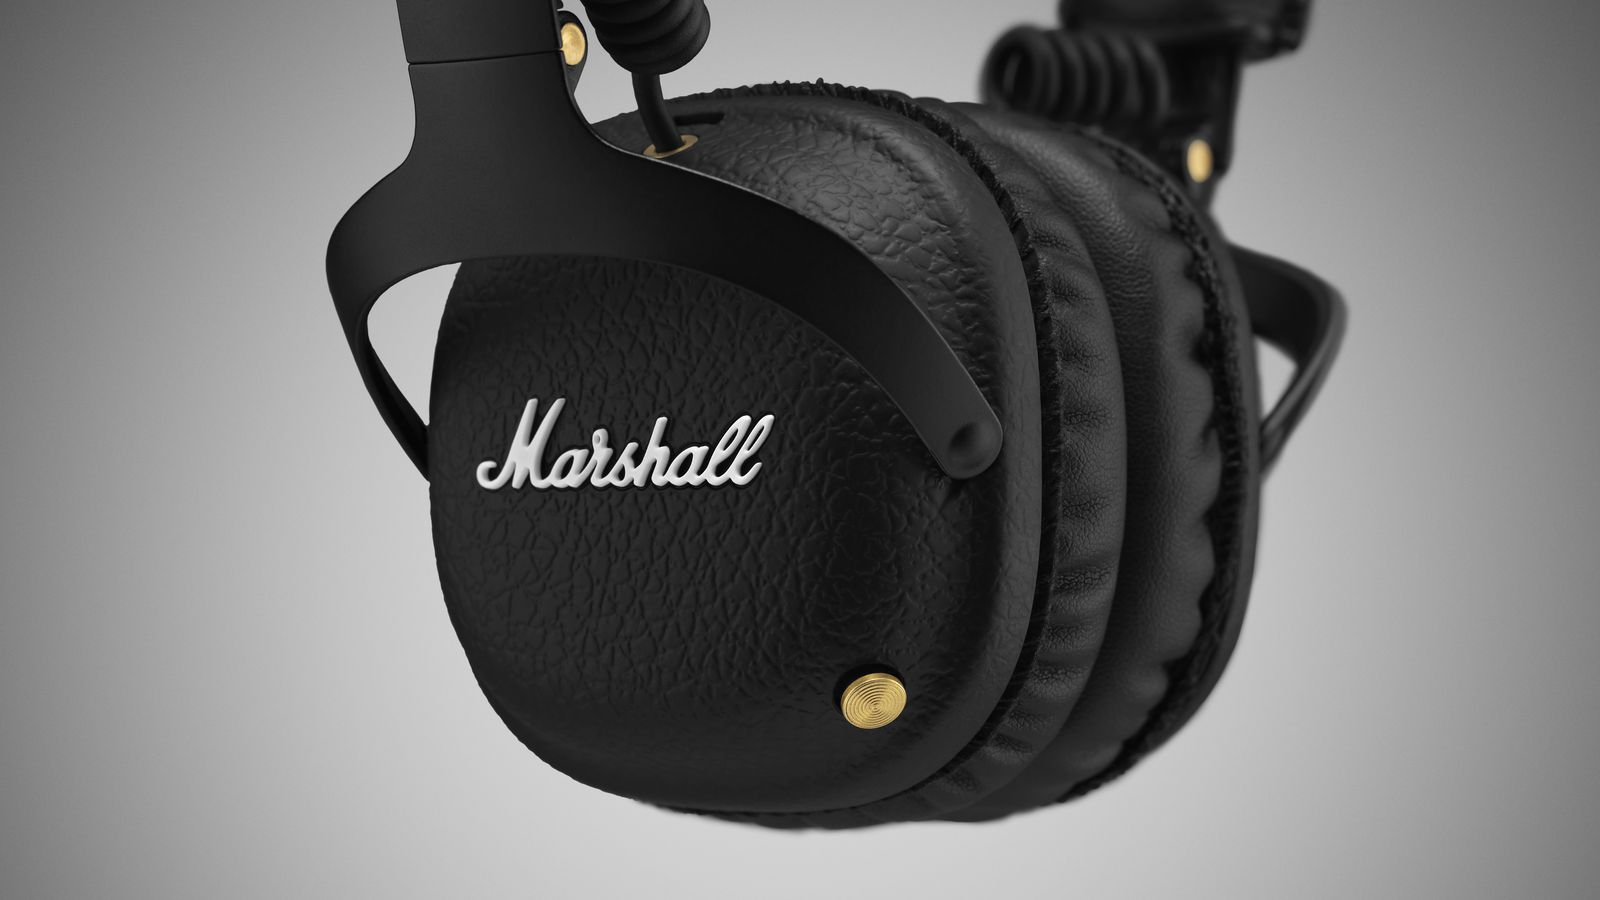 marshall mixes old and new with its latest bluetooth headphones the verge. Black Bedroom Furniture Sets. Home Design Ideas